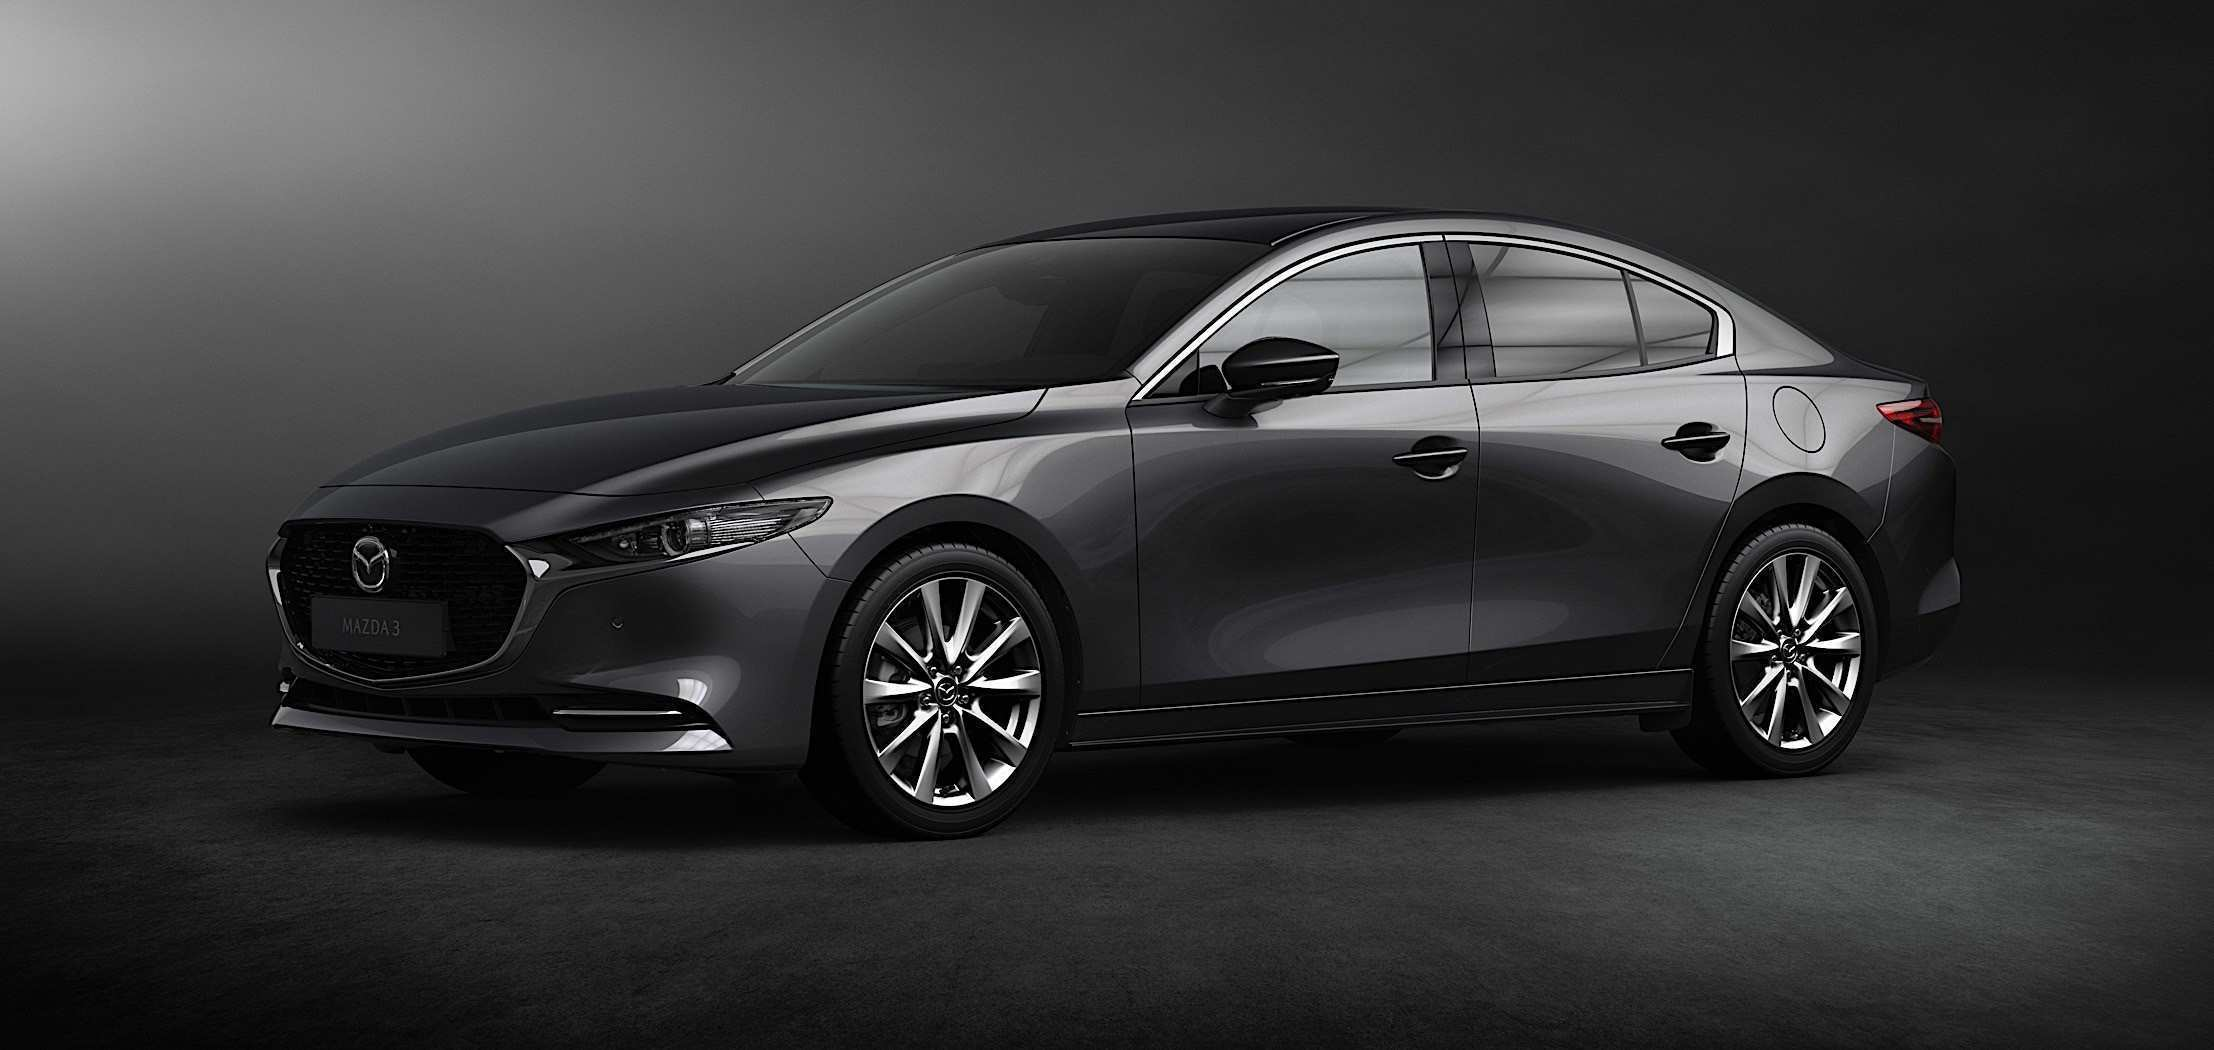 59 All New Mazda Engine 2020 Price Design And Review